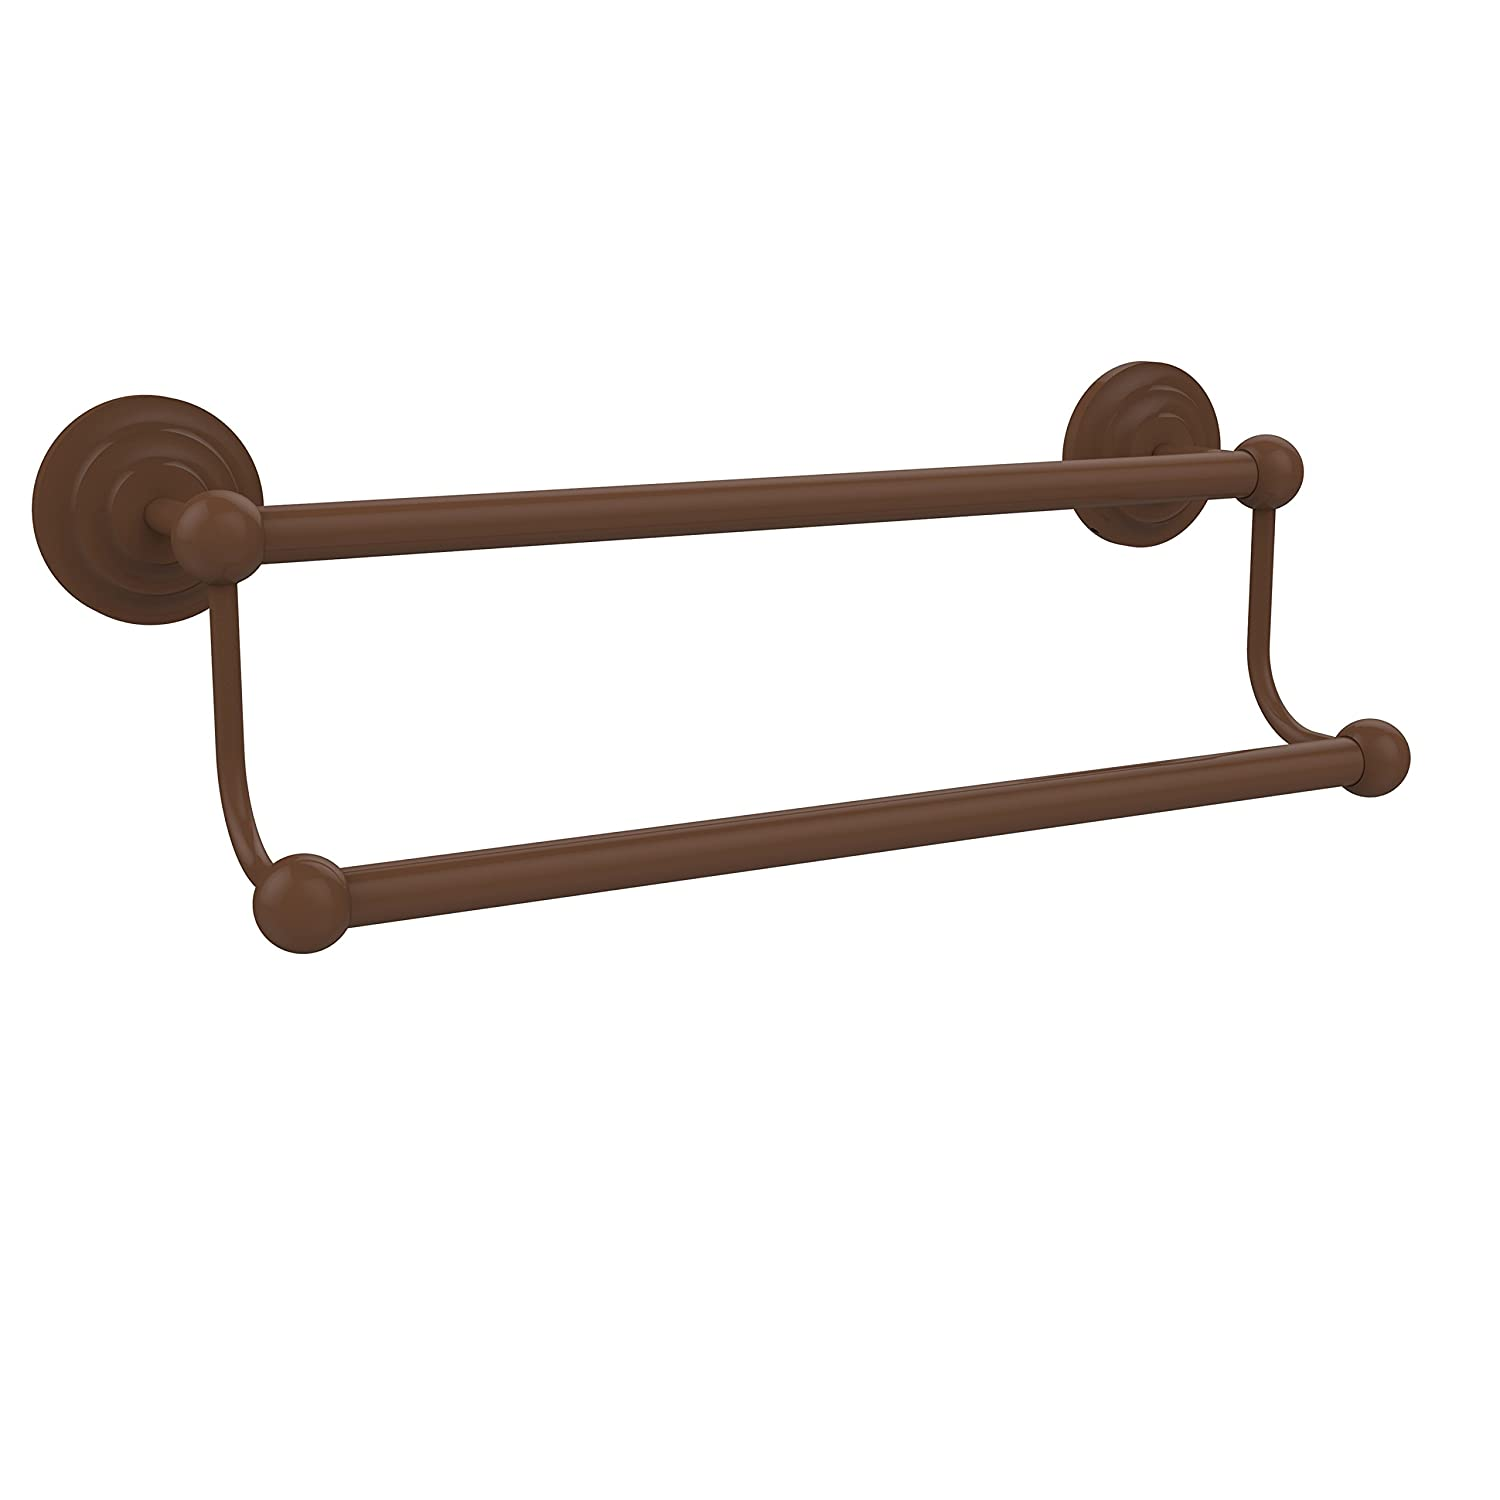 Allied Brass PQN-72/36-ABZ 36-Inch Double Towel Bar, Antique Bronze by Allied Brass B0087LQ51Cブロンズ(antique bronze)